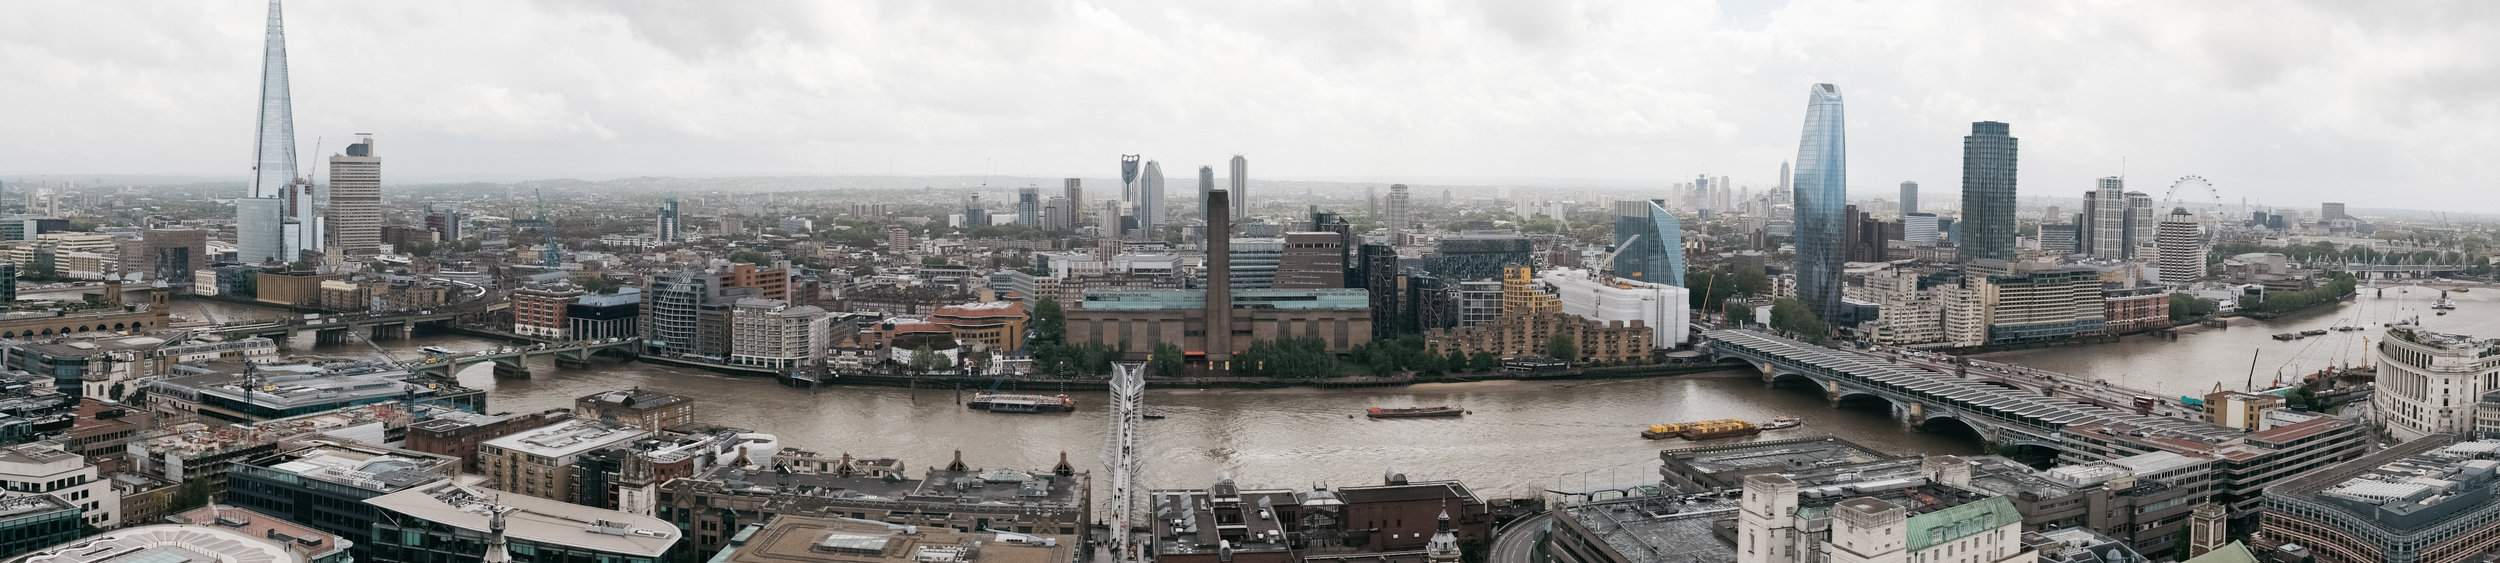 Panoramic view of London from atop St. Paul's Cathedral Dome. Shot on the X-T20 with the Fujinon 23mm 1.4.